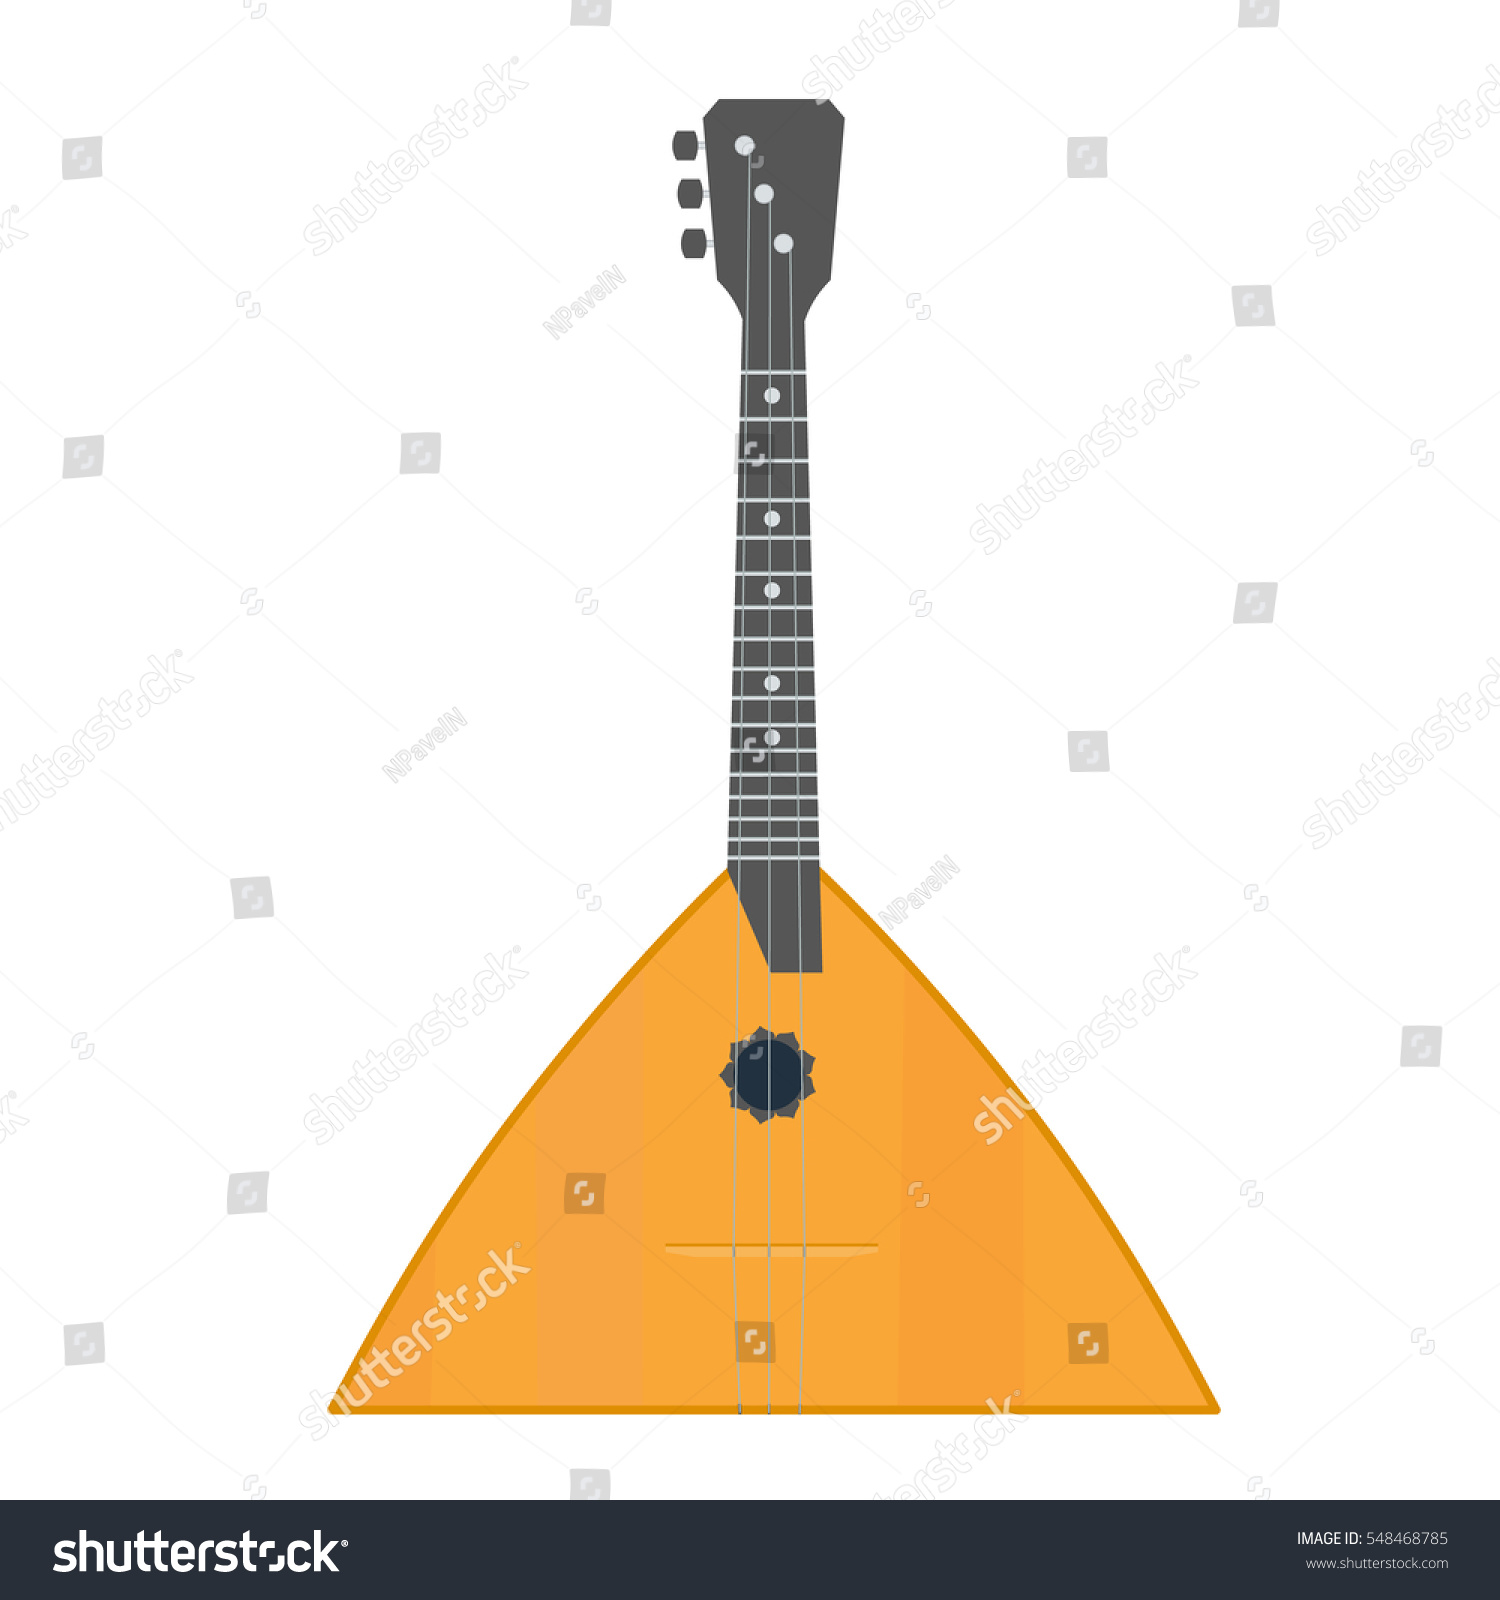 How to draw a balalaika in a pencil step by step